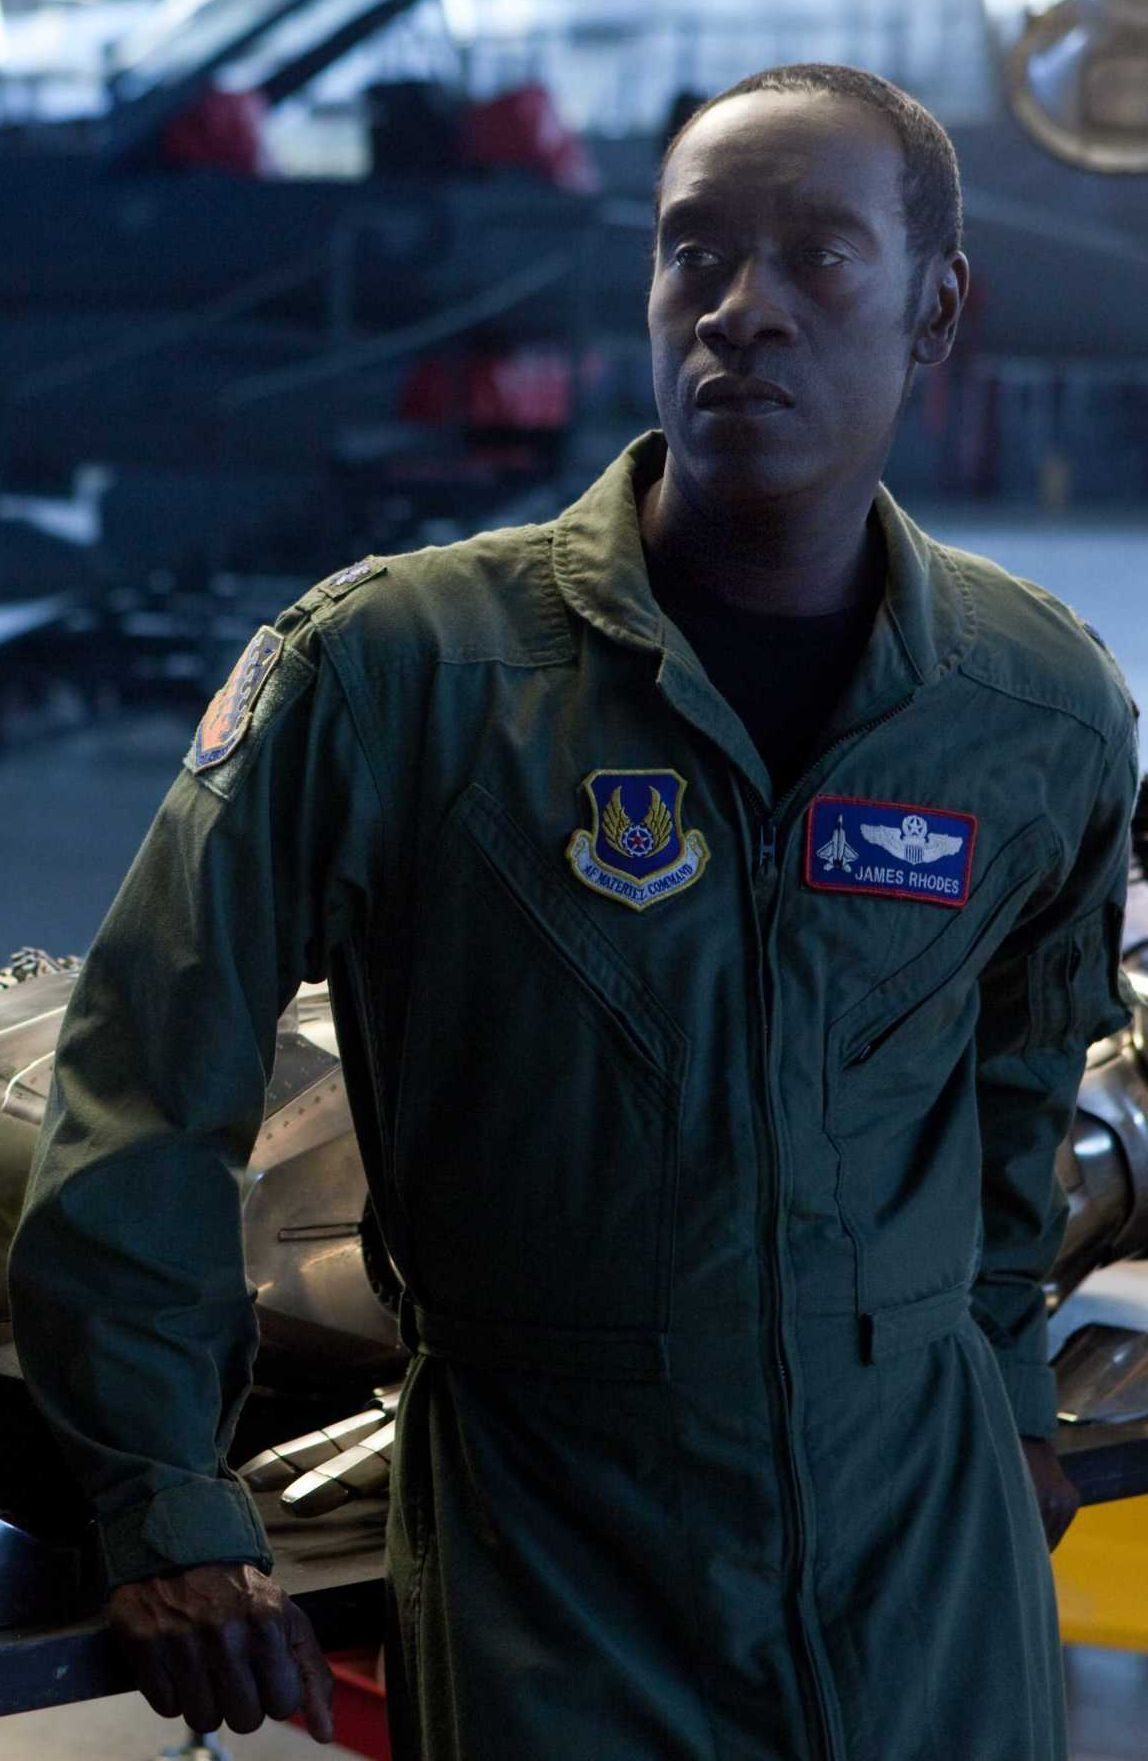 James Rhodes War Machine Don Cheadle In Iron Man 2 2010 Marvel Iron Man Marvel Avengers Characters